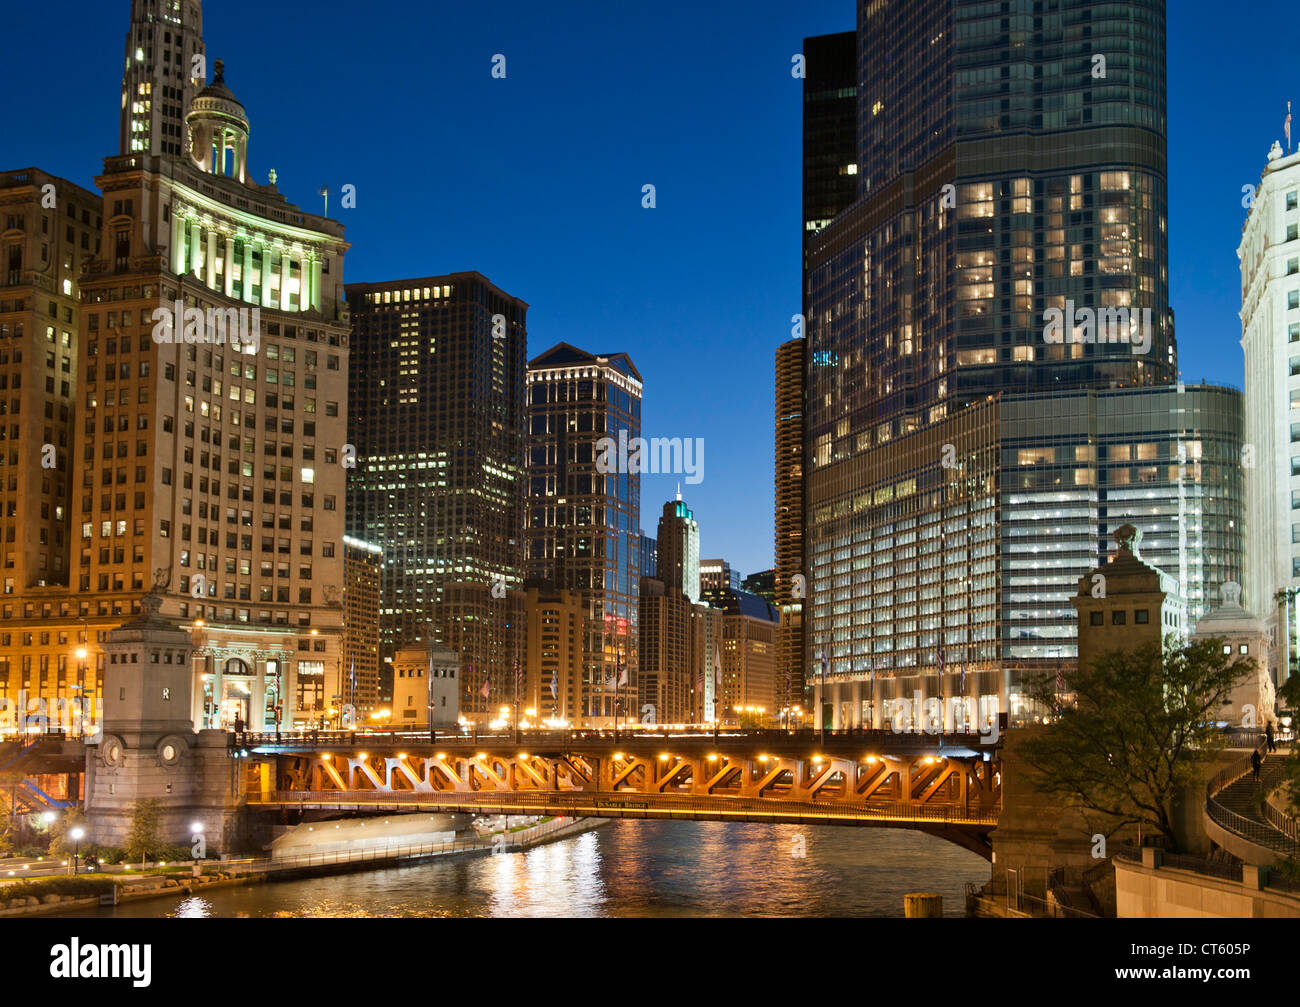 Night-time view of the Michigan Avenue Bridge (officially DuSable Bridge) and downtown Chicago, Illinois, USA. - Stock Image